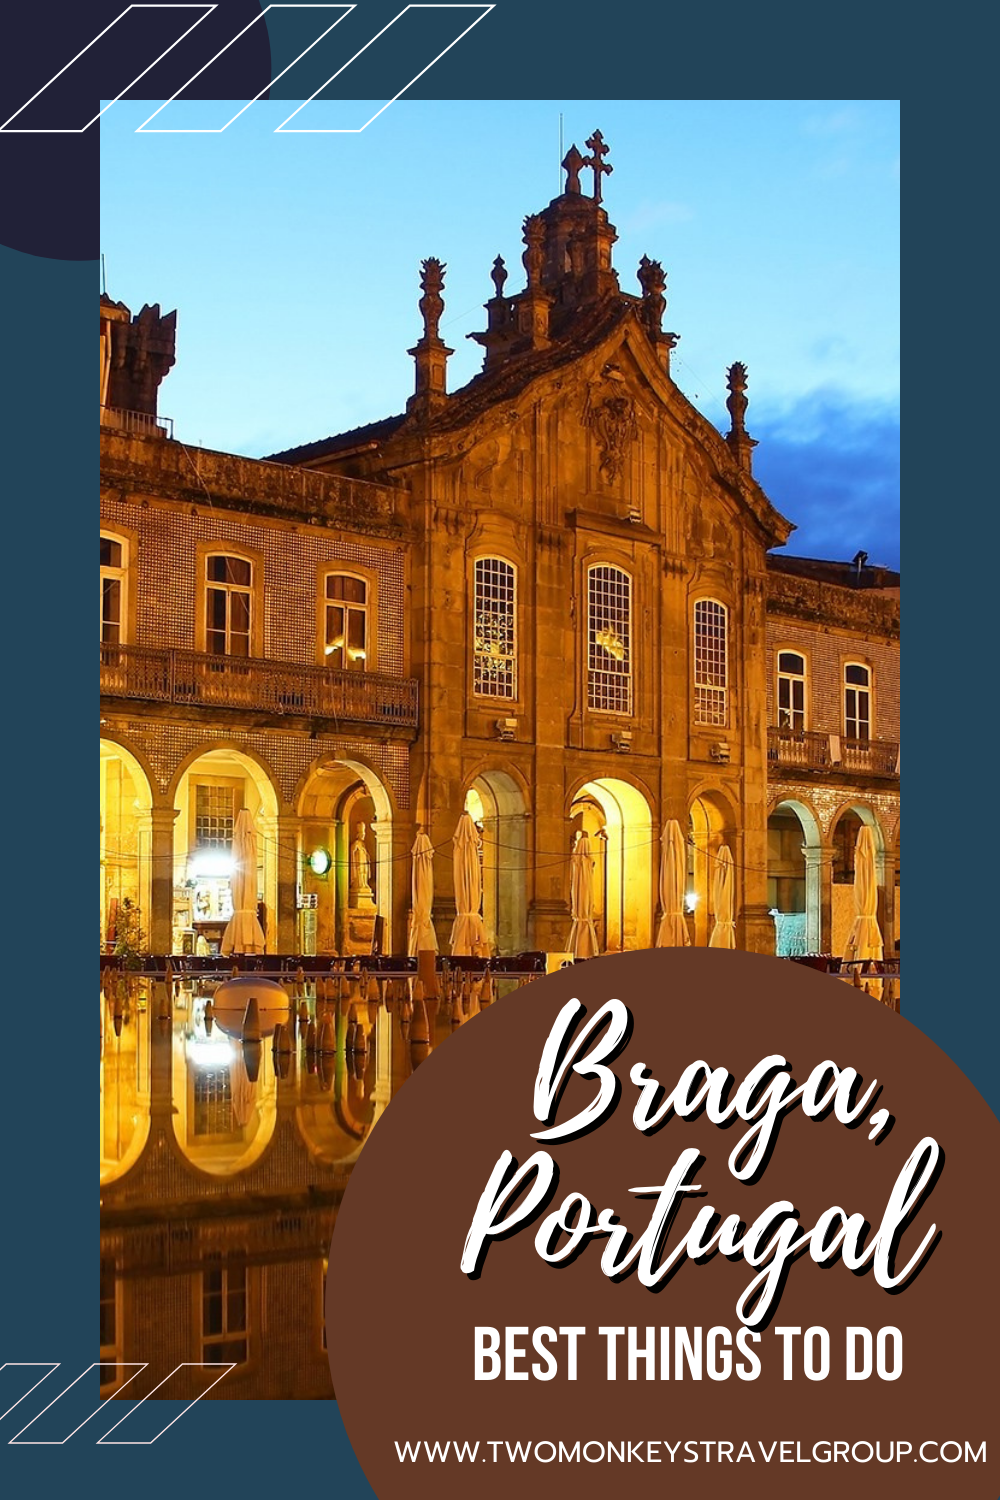 10 Best Things to do in Braga, Portugal [with Suggested Tours]